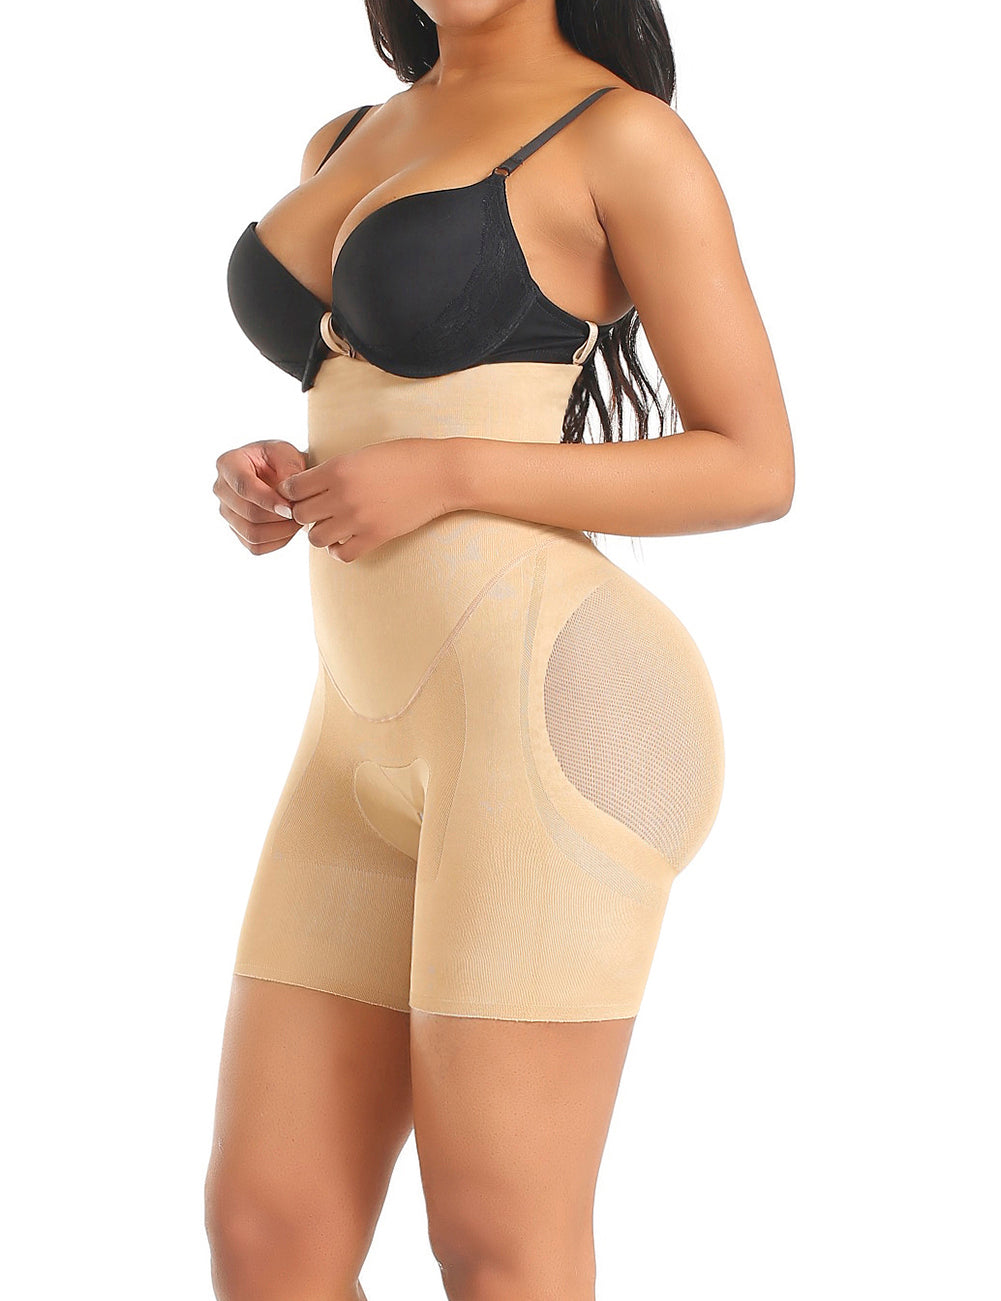 Loverbeauty High Waist Shaping Shorts | Double Tummy Layer Butt Lifter - loverbeauty